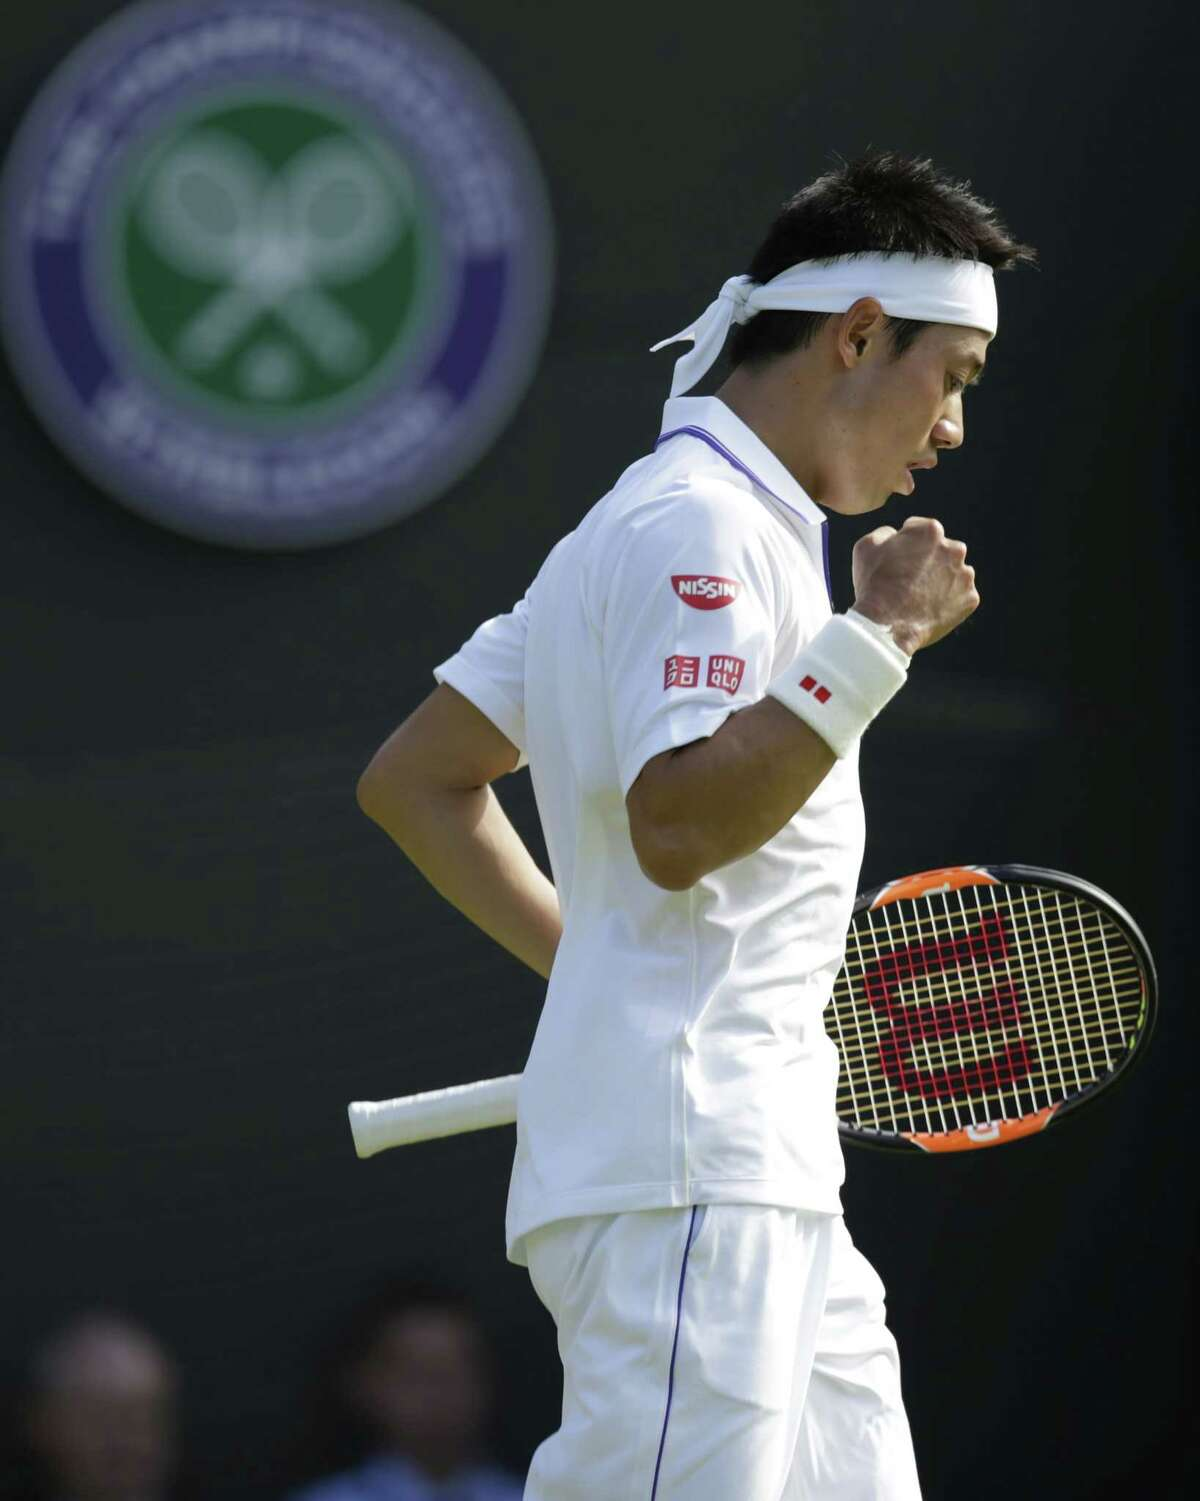 Kei Nishikori of Japan celebrates winning the third set against Simone Bolelli of Italy during the men's singles first round match at the All England Lawn Tennis Championships in Wimbledon, London on June 29, 2015.